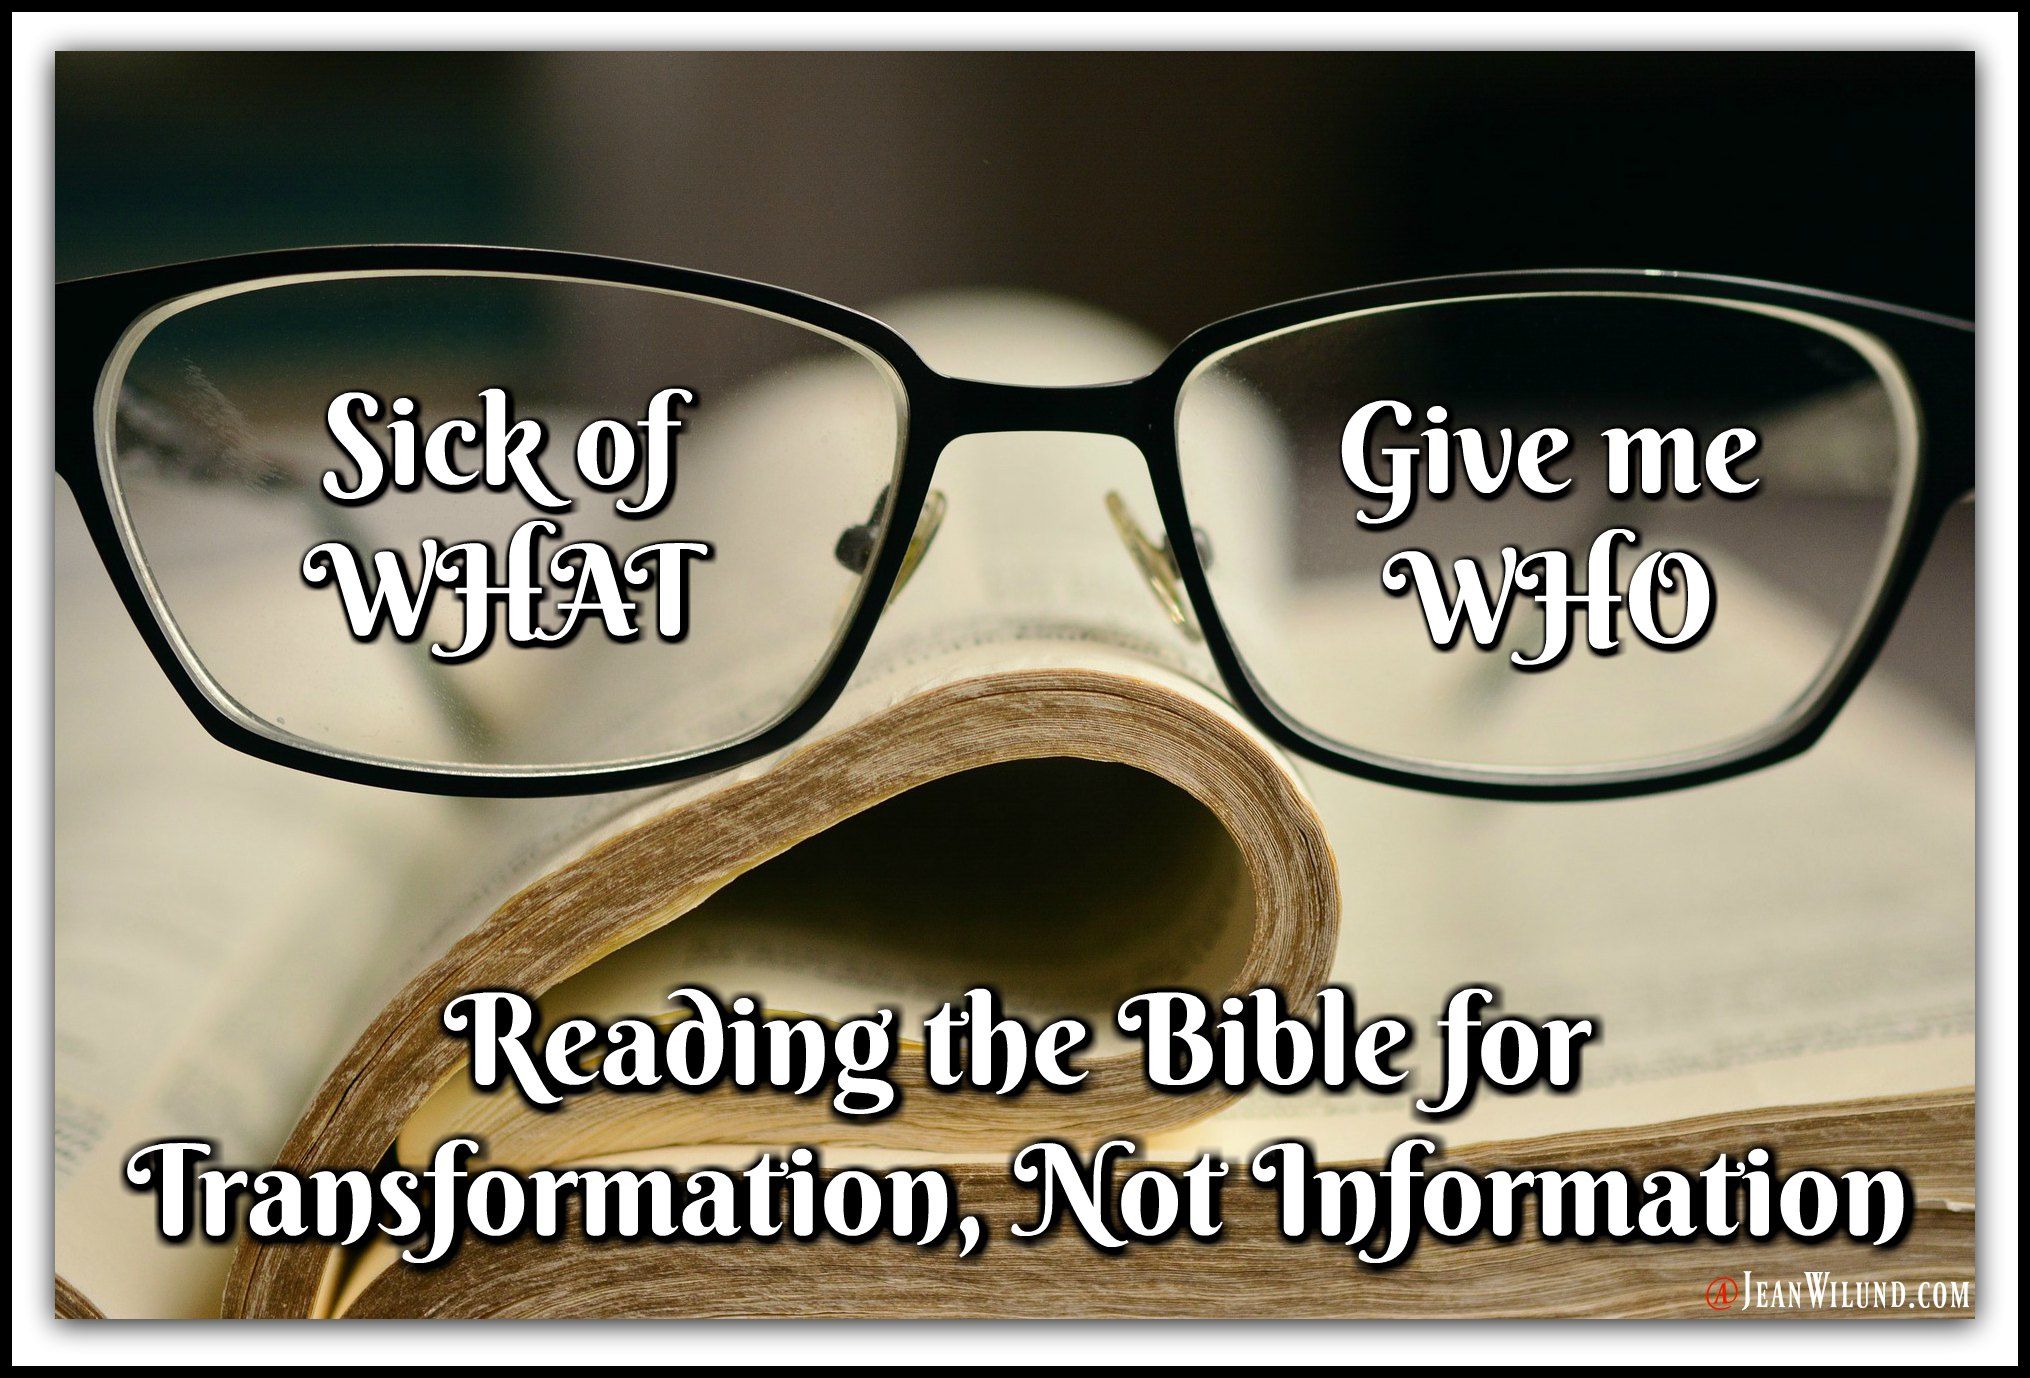 Reading the Bible seem boring or discouraging? Start looking for the WHO (the Lord), not the WHAT (the rules). I was sick of the WHAT until I found the WHO. Reading the Bible for Transformation, Not Information via www.jeanwilund.com